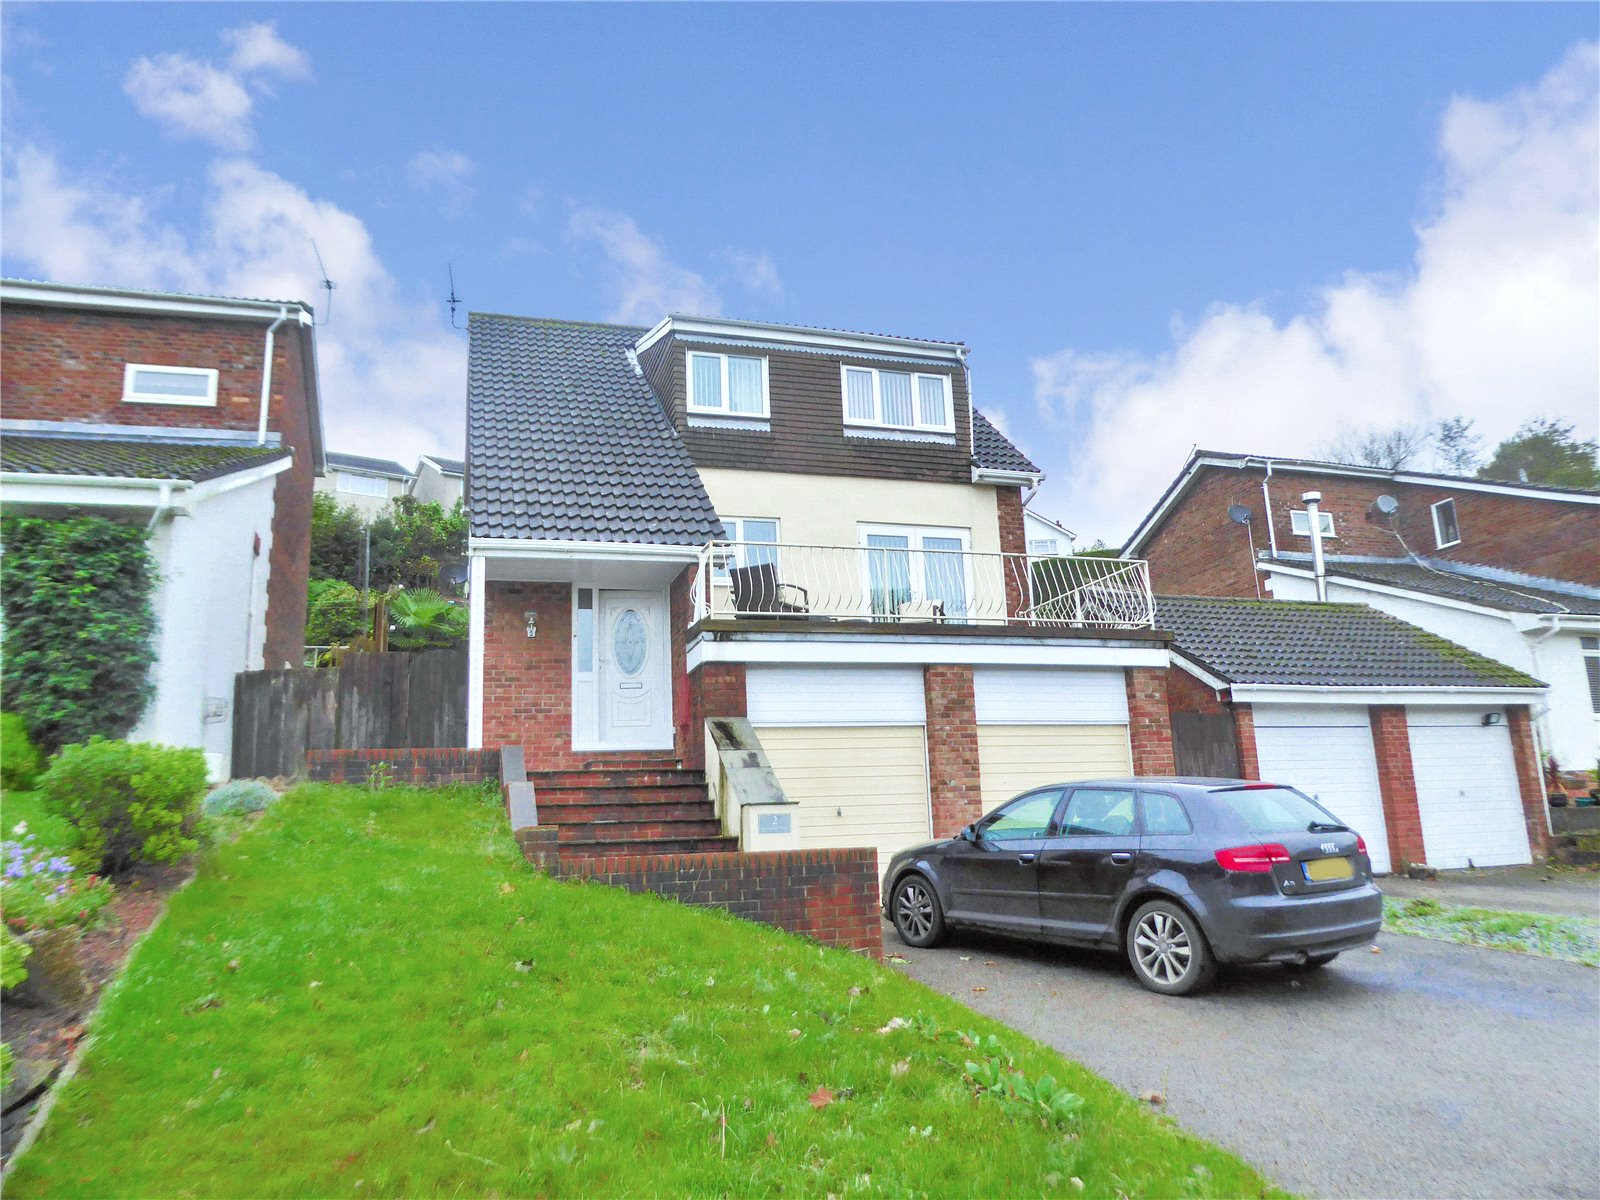 4 Bedrooms Property for sale in Springfield Drive Off Chepstow Road Newport NP19